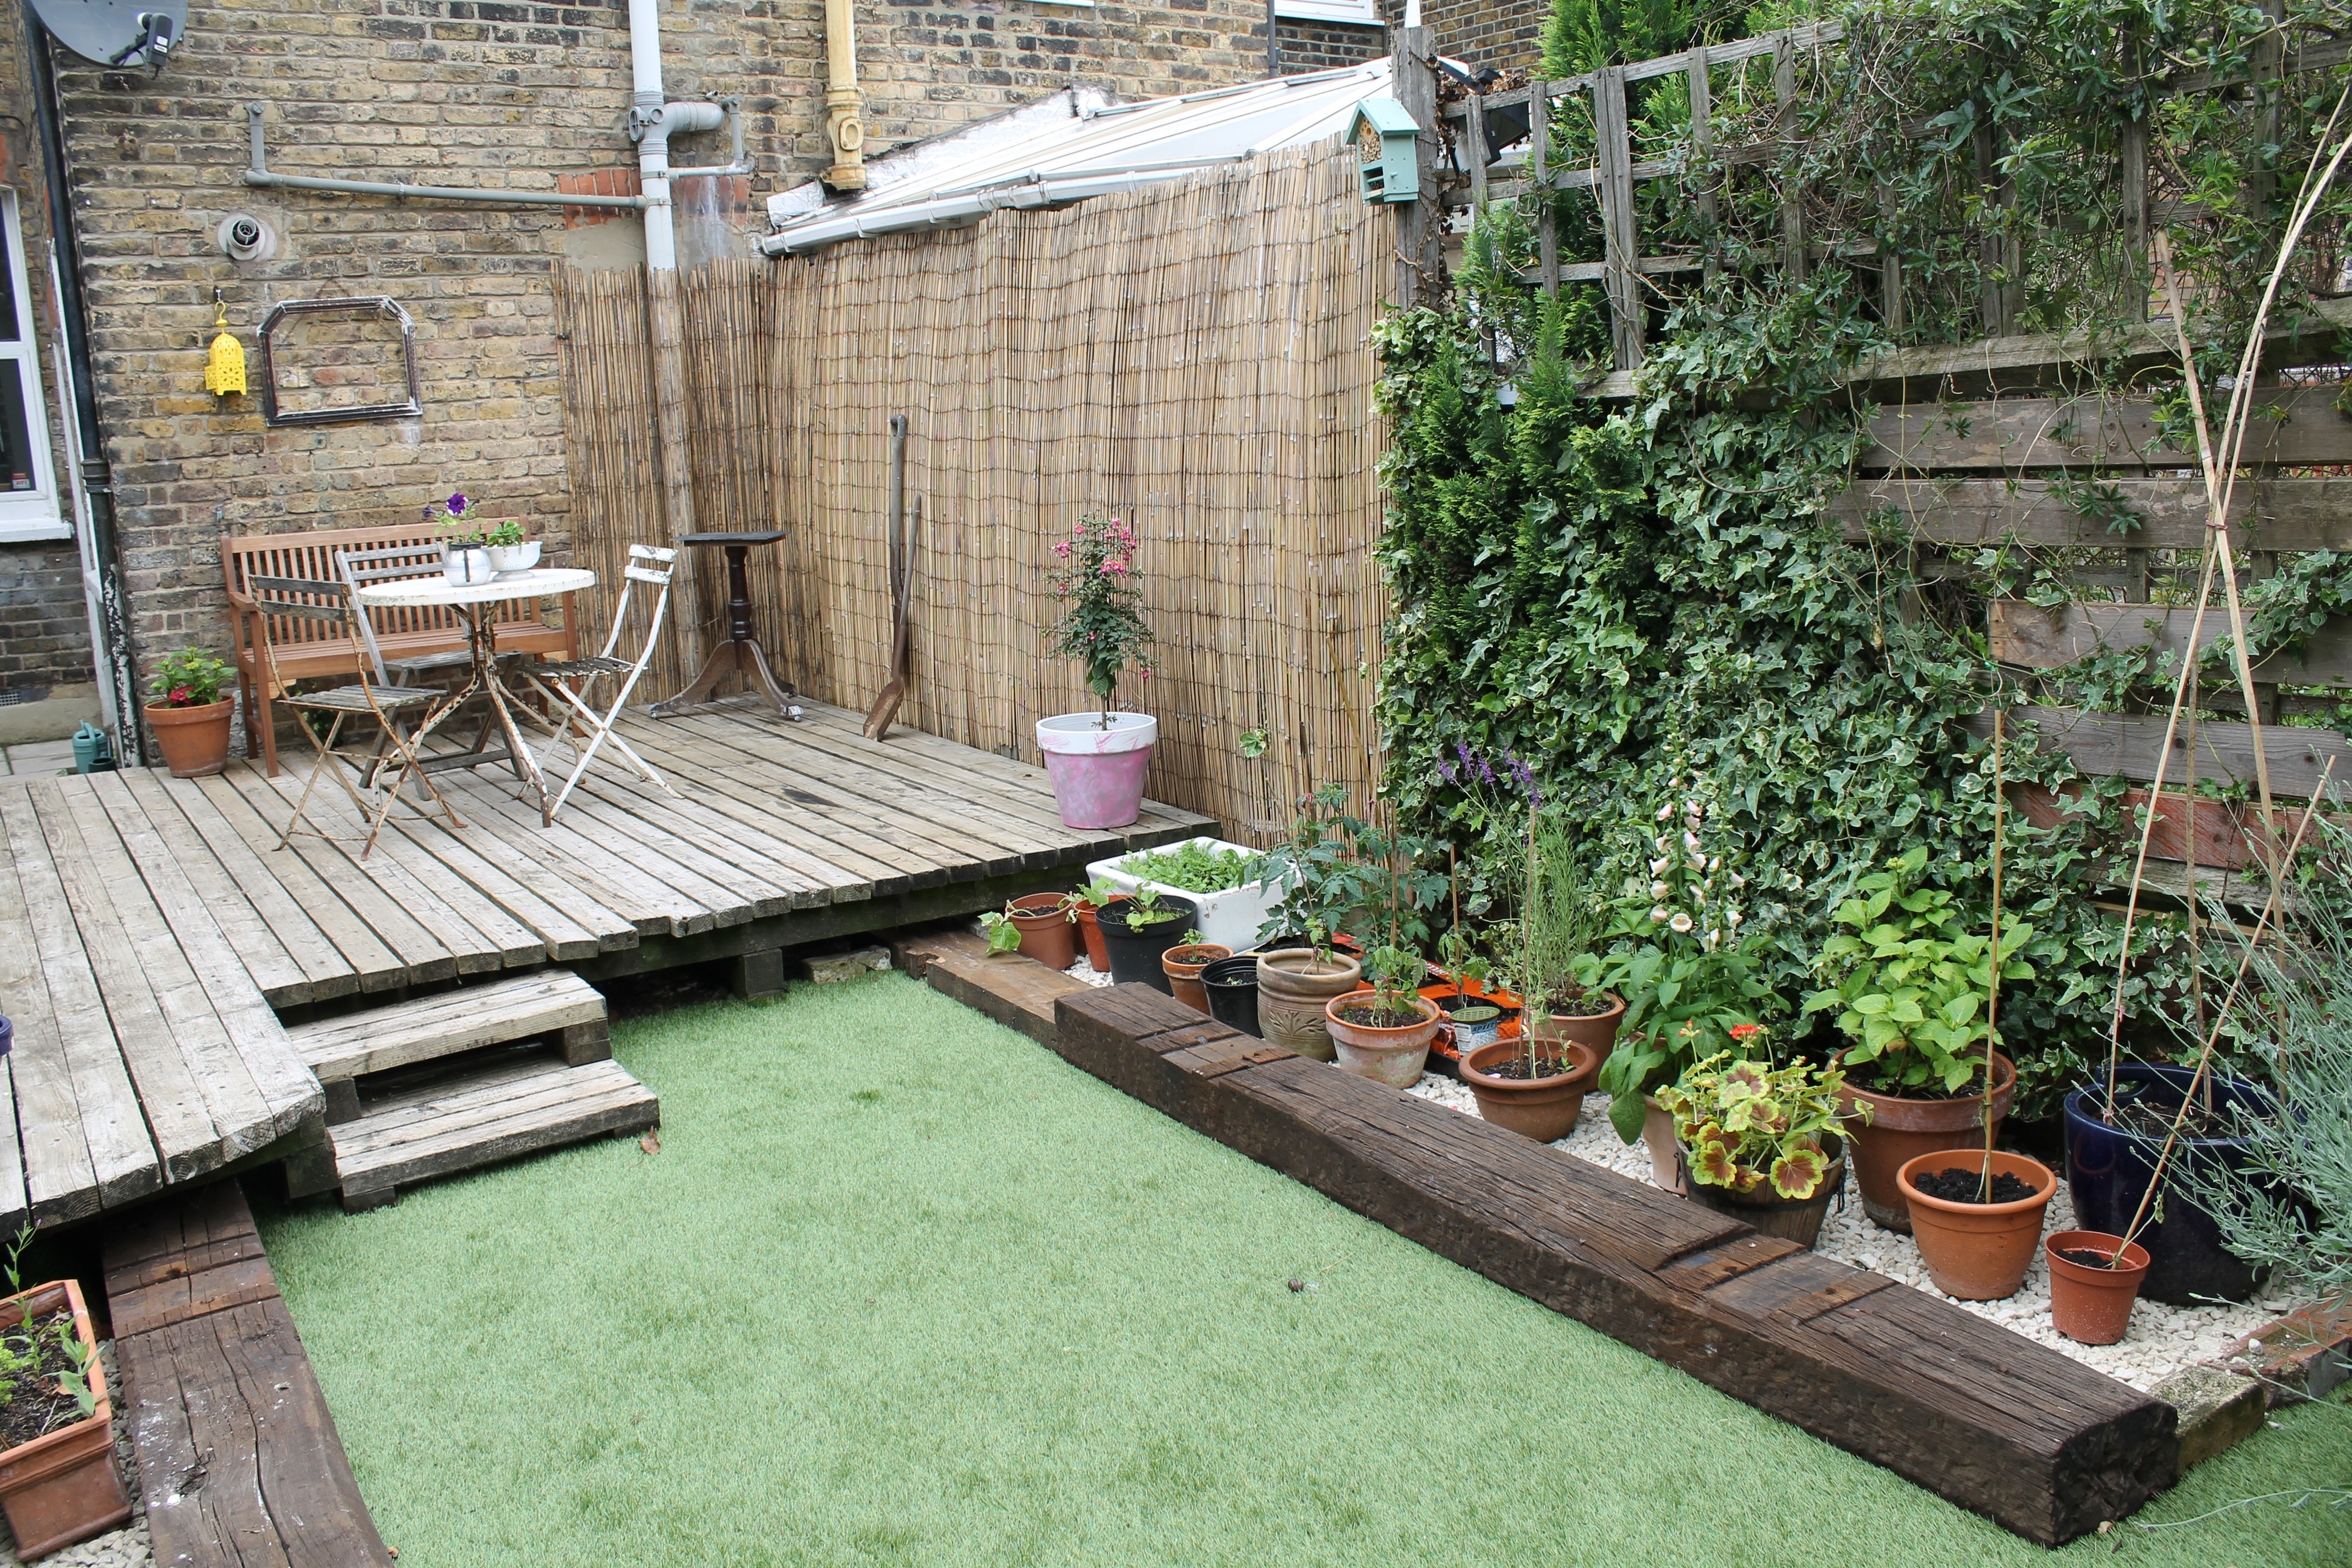 House garden pictures - After Shot Towards House Garden Makeover By Joanna Thornhill For Stylist S Own